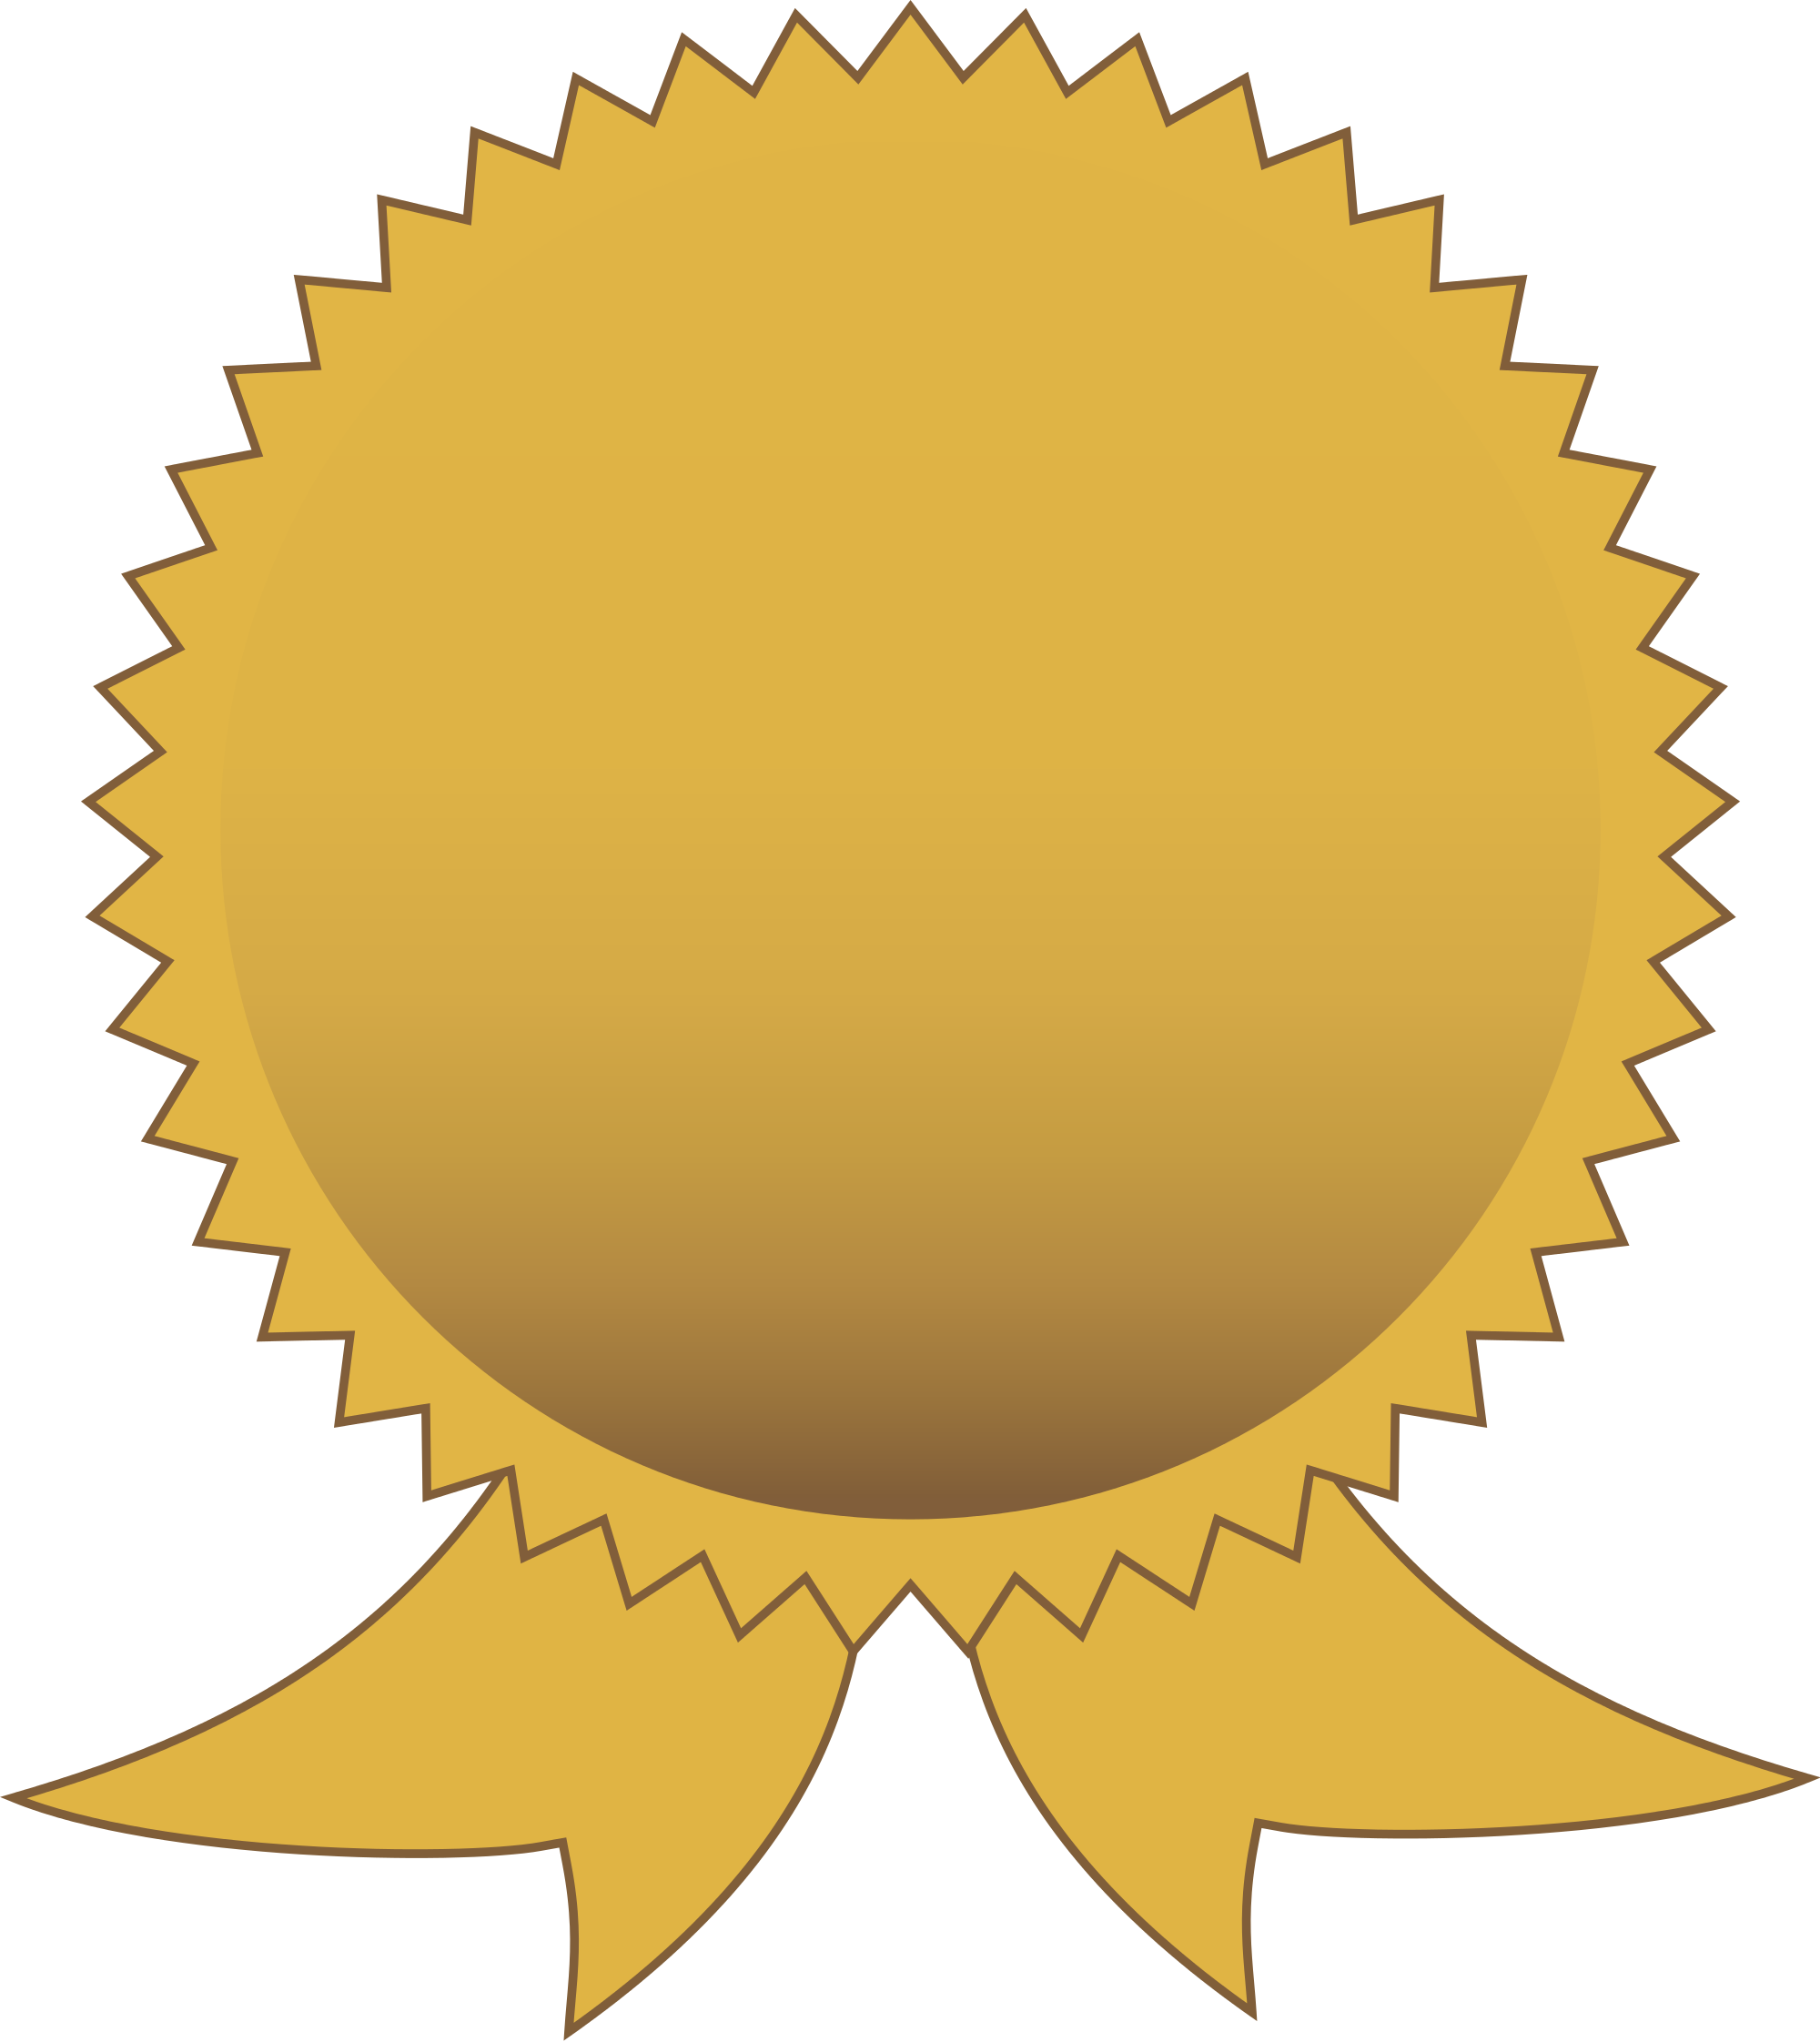 Commons clipart acceptance. File gold seal v